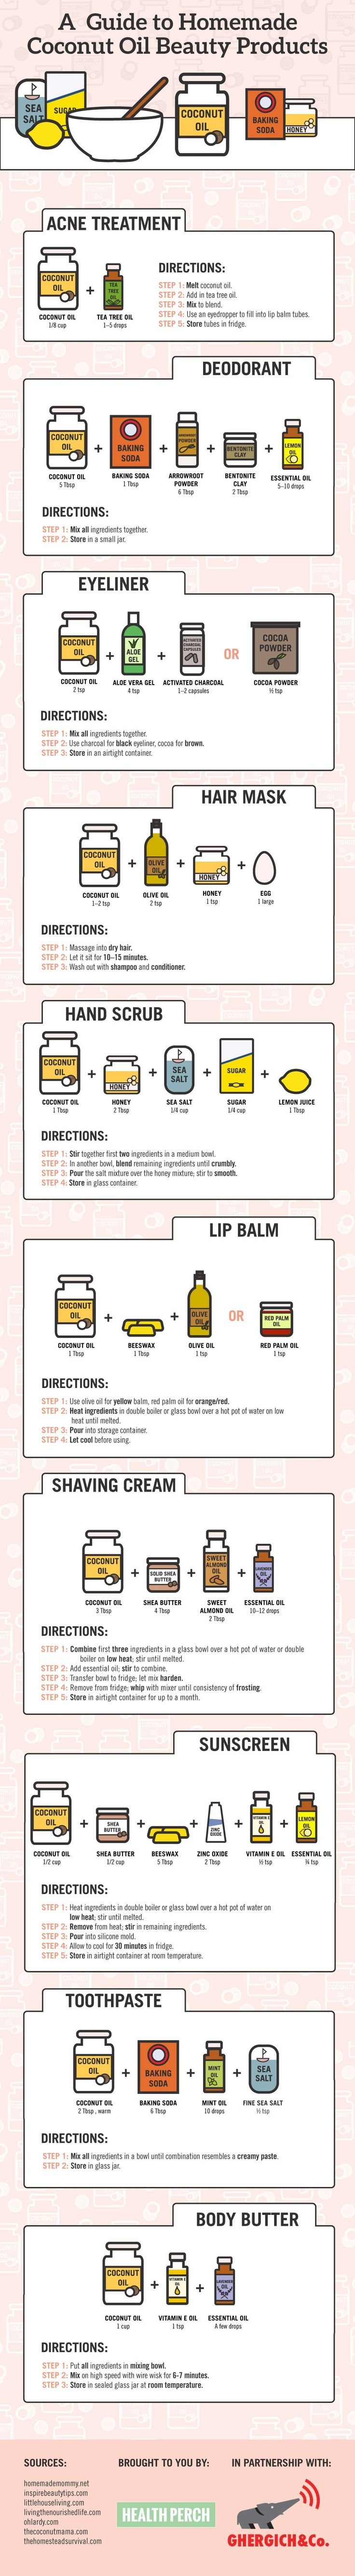 A Guide to Homemade Coconut Oil Beauty Products - Make your own homemade coconut oil beauty products, everything from an acne treatment to toothpaste. http://www.northwestpharmacy.com/healthperch/coconut-oil-beauty-products/: